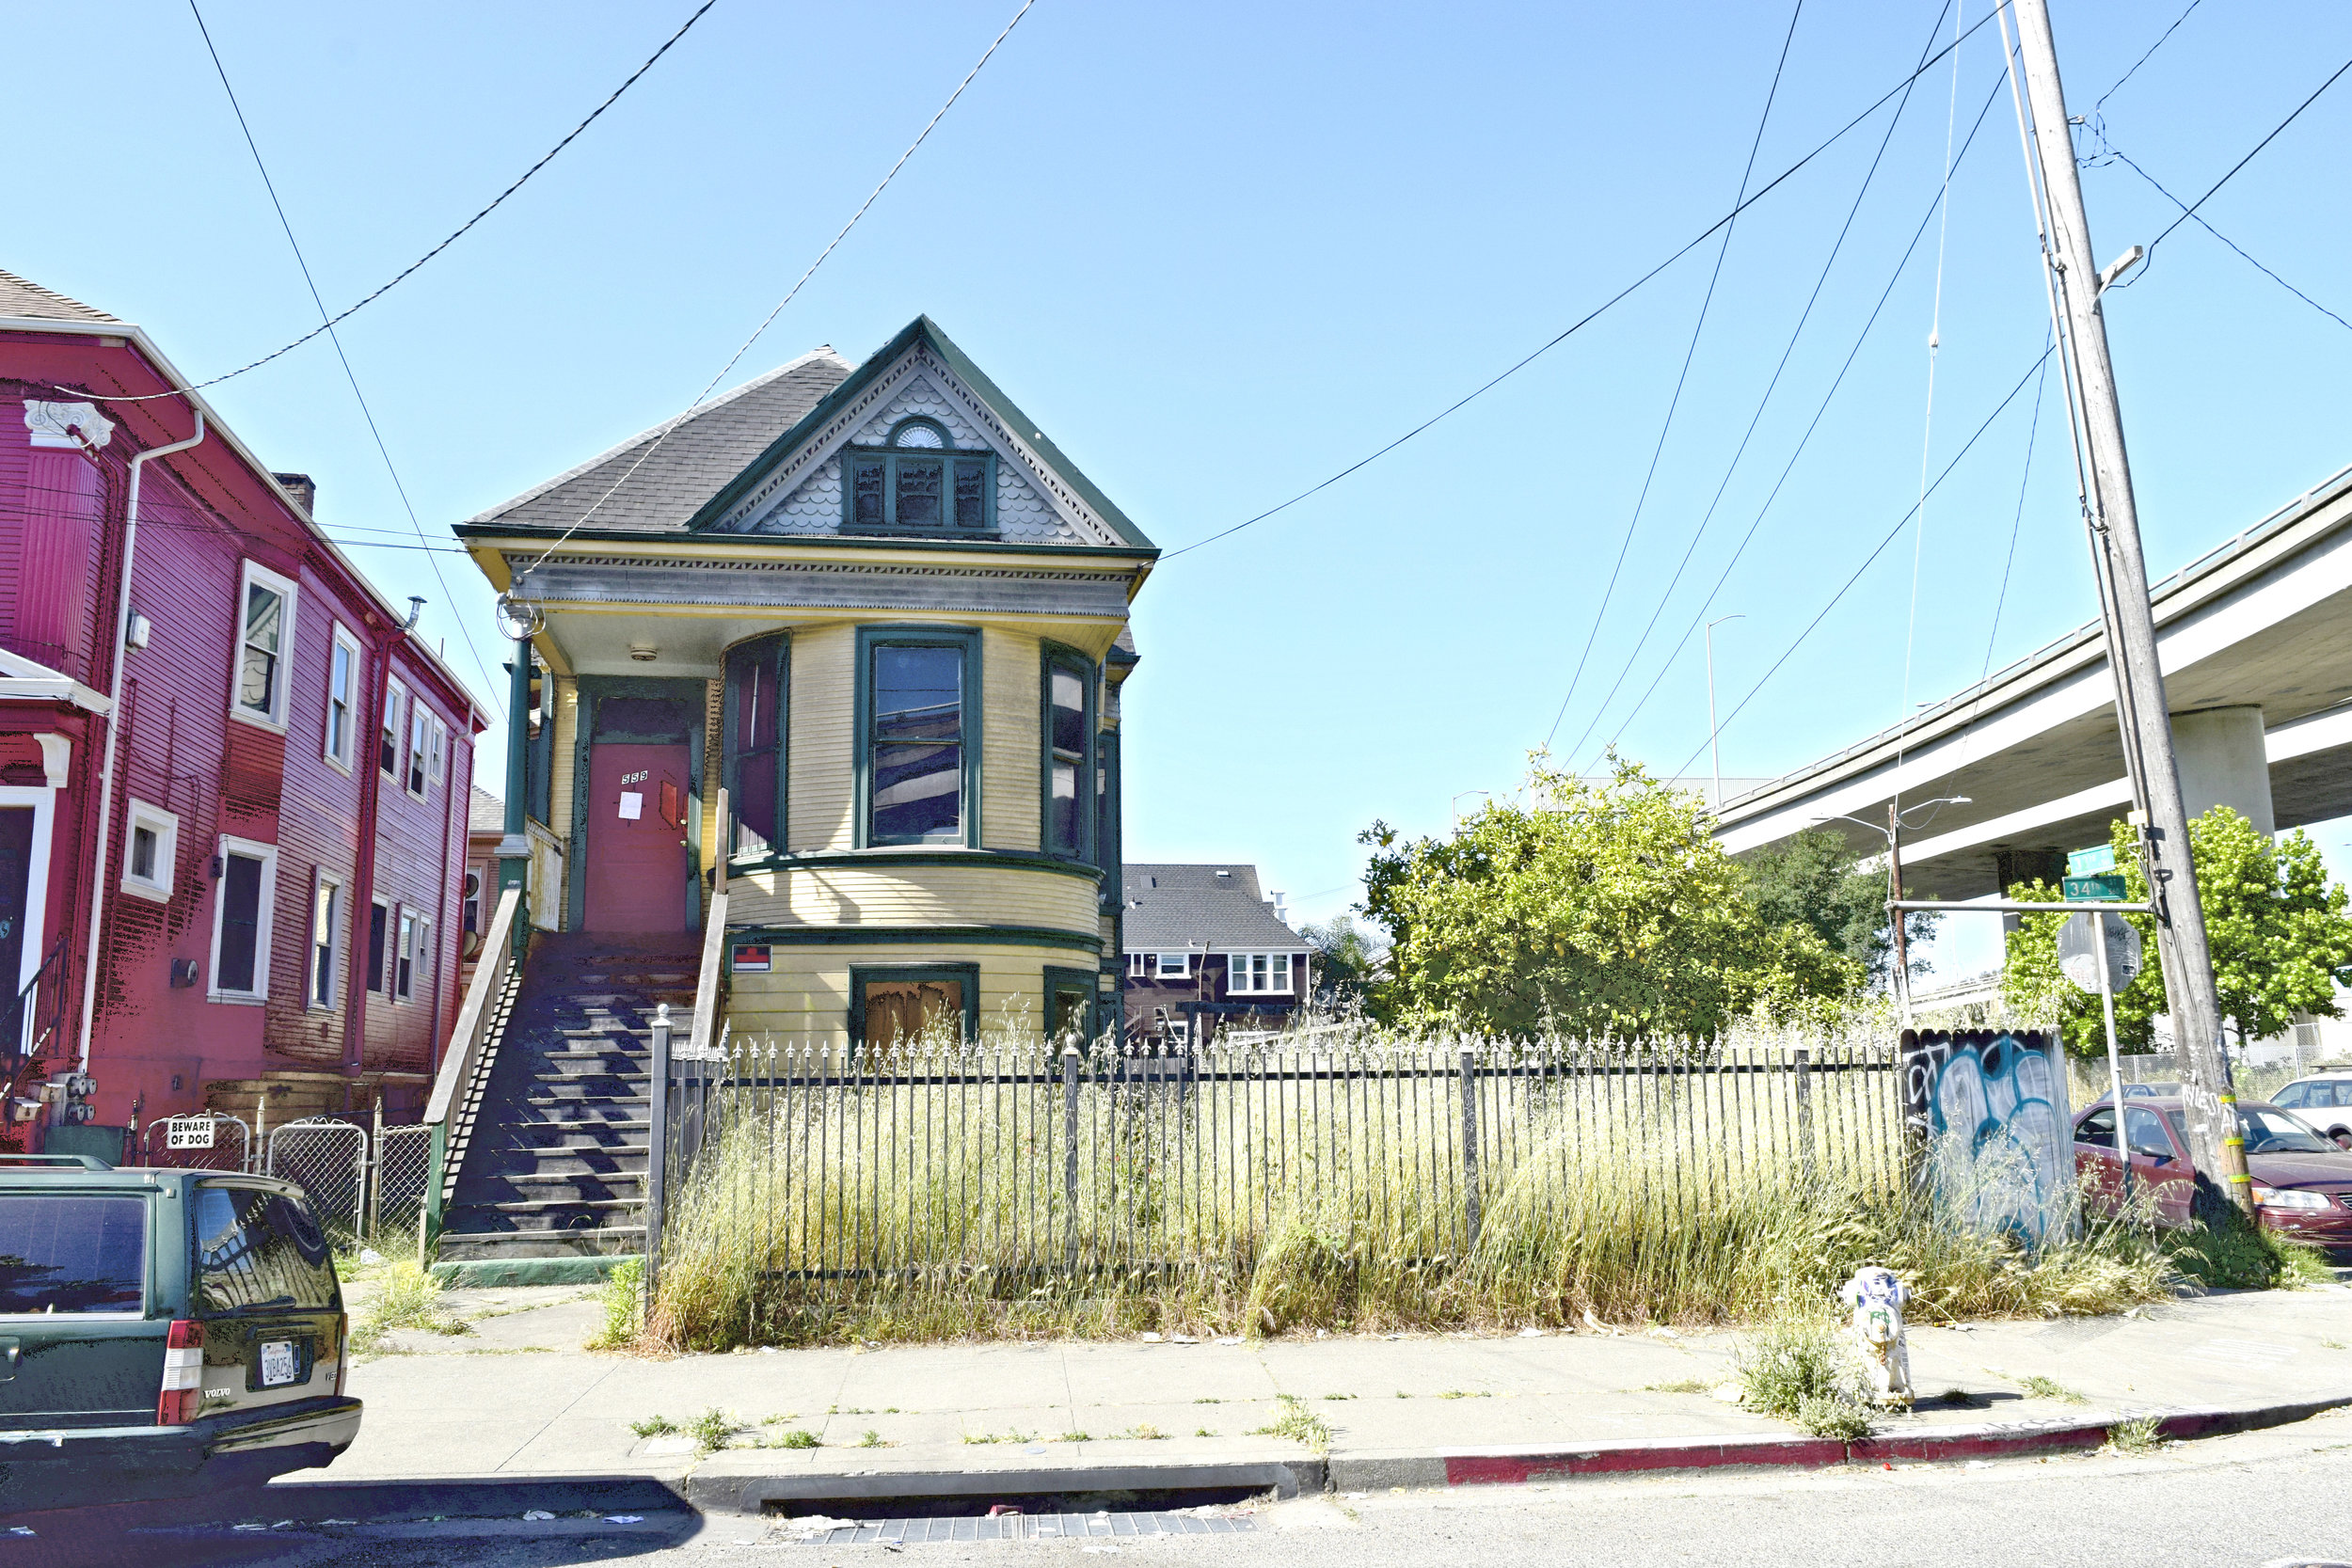 West oakland haunted house, 34th.jpg